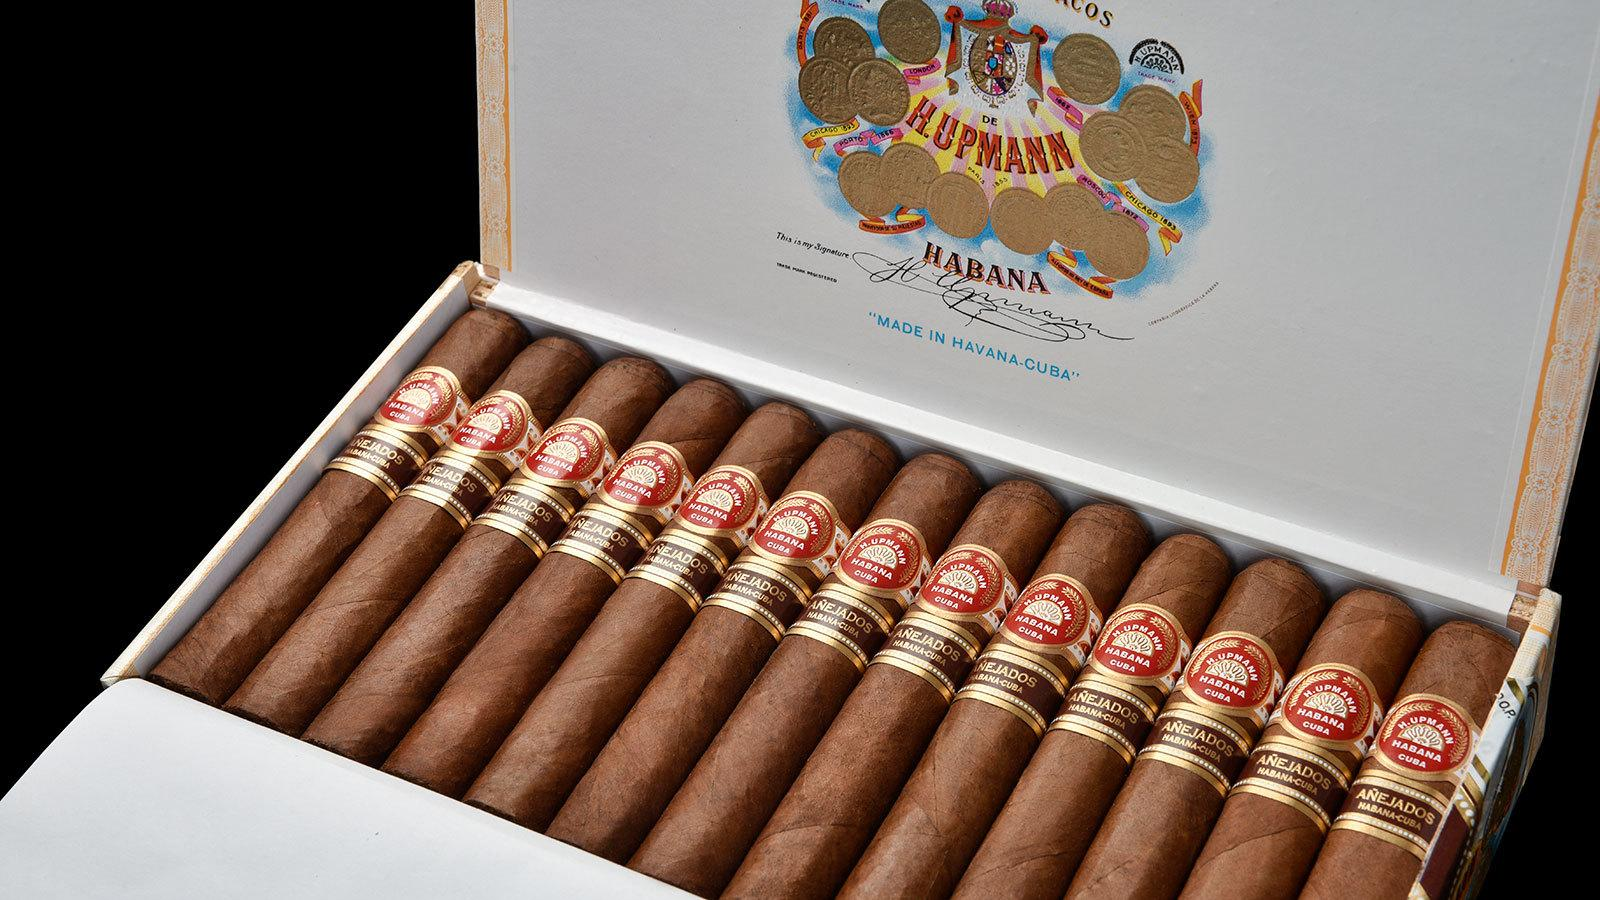 Each cigar in this box of H. Upmann Robusto Añejado is identical in size and wrapper shade.